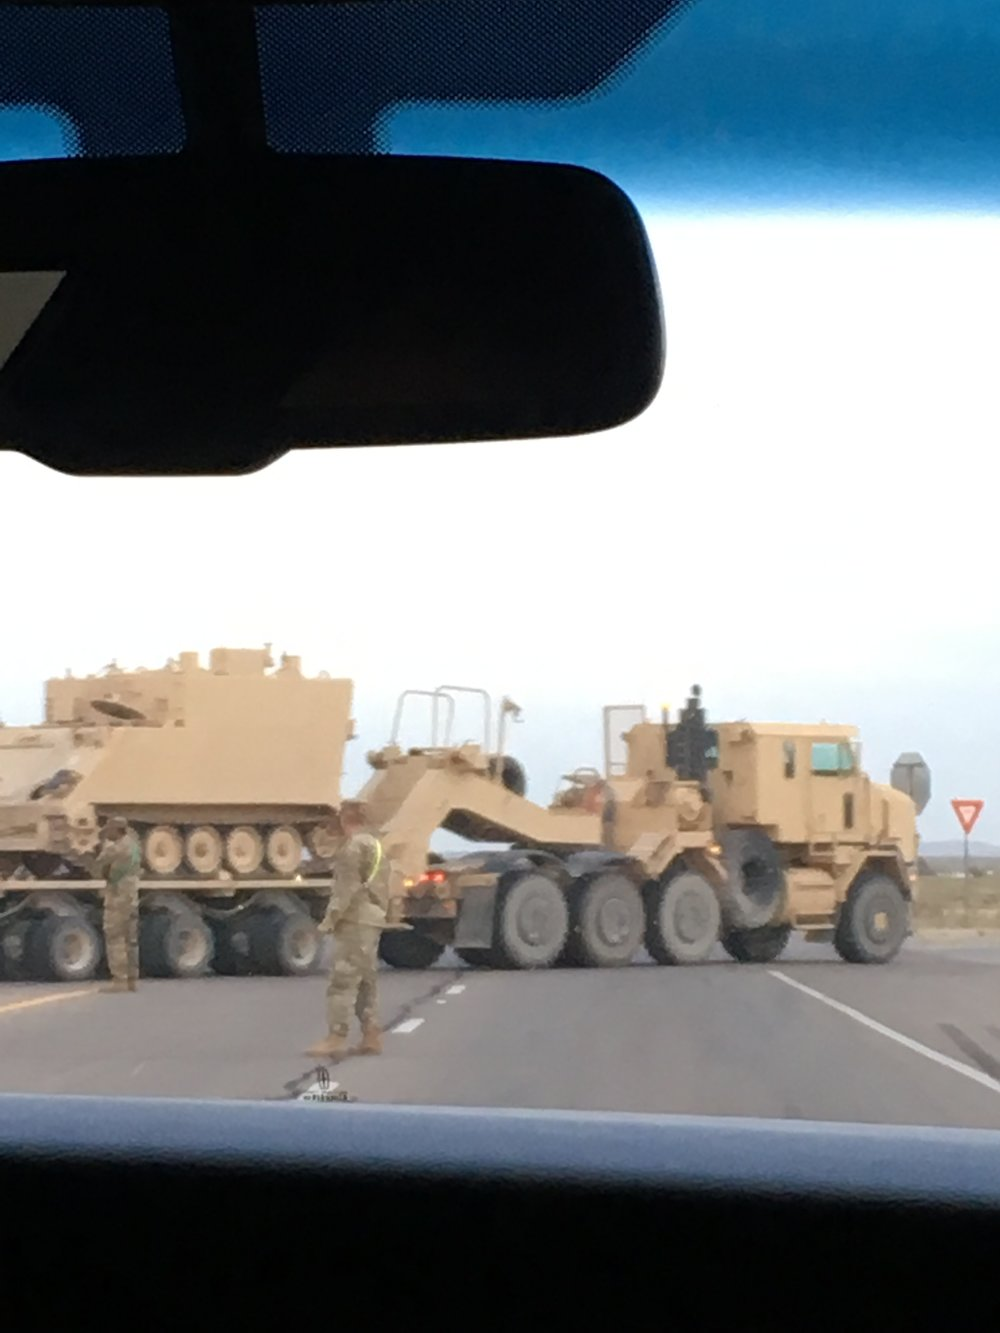 Stopped on Route 54 to let a military convoy cross the highway.